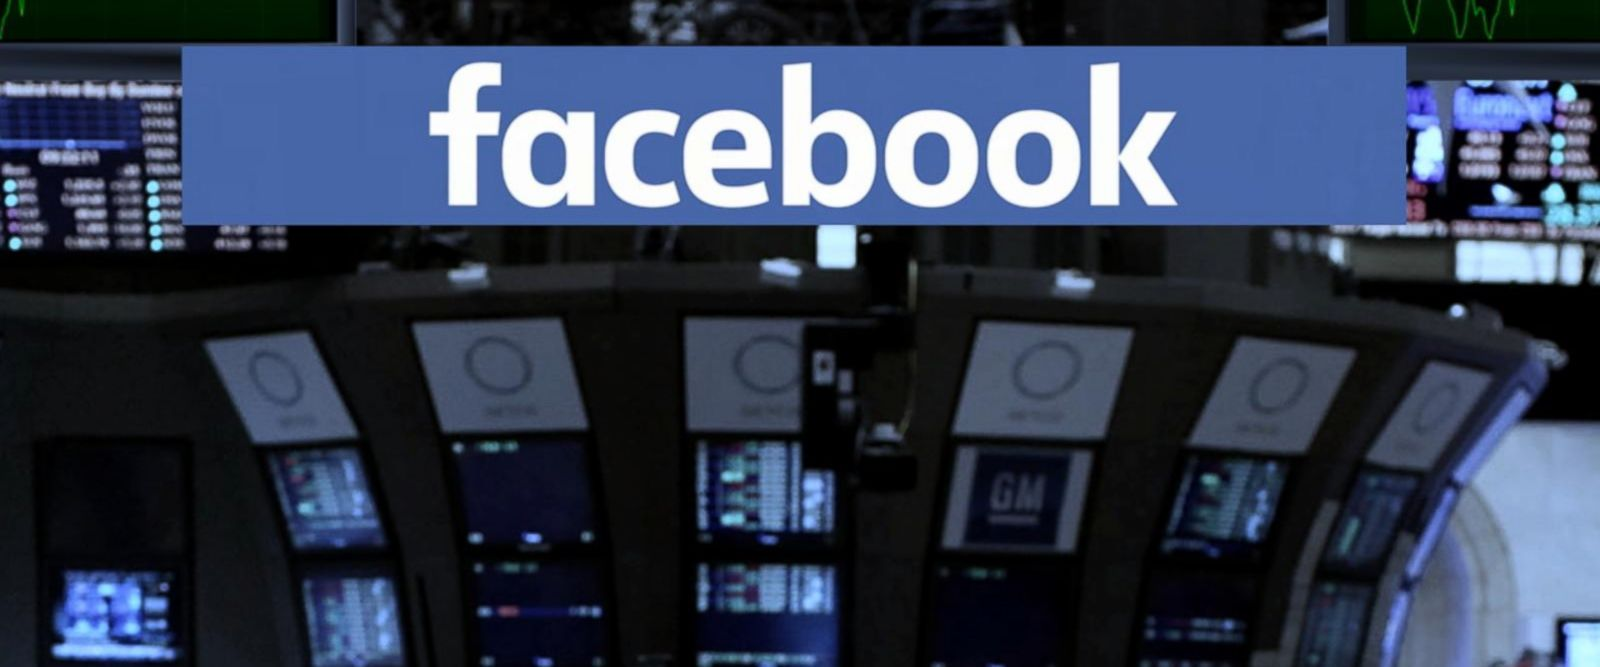 VIDEO: Facebook stock drops amid data fallout